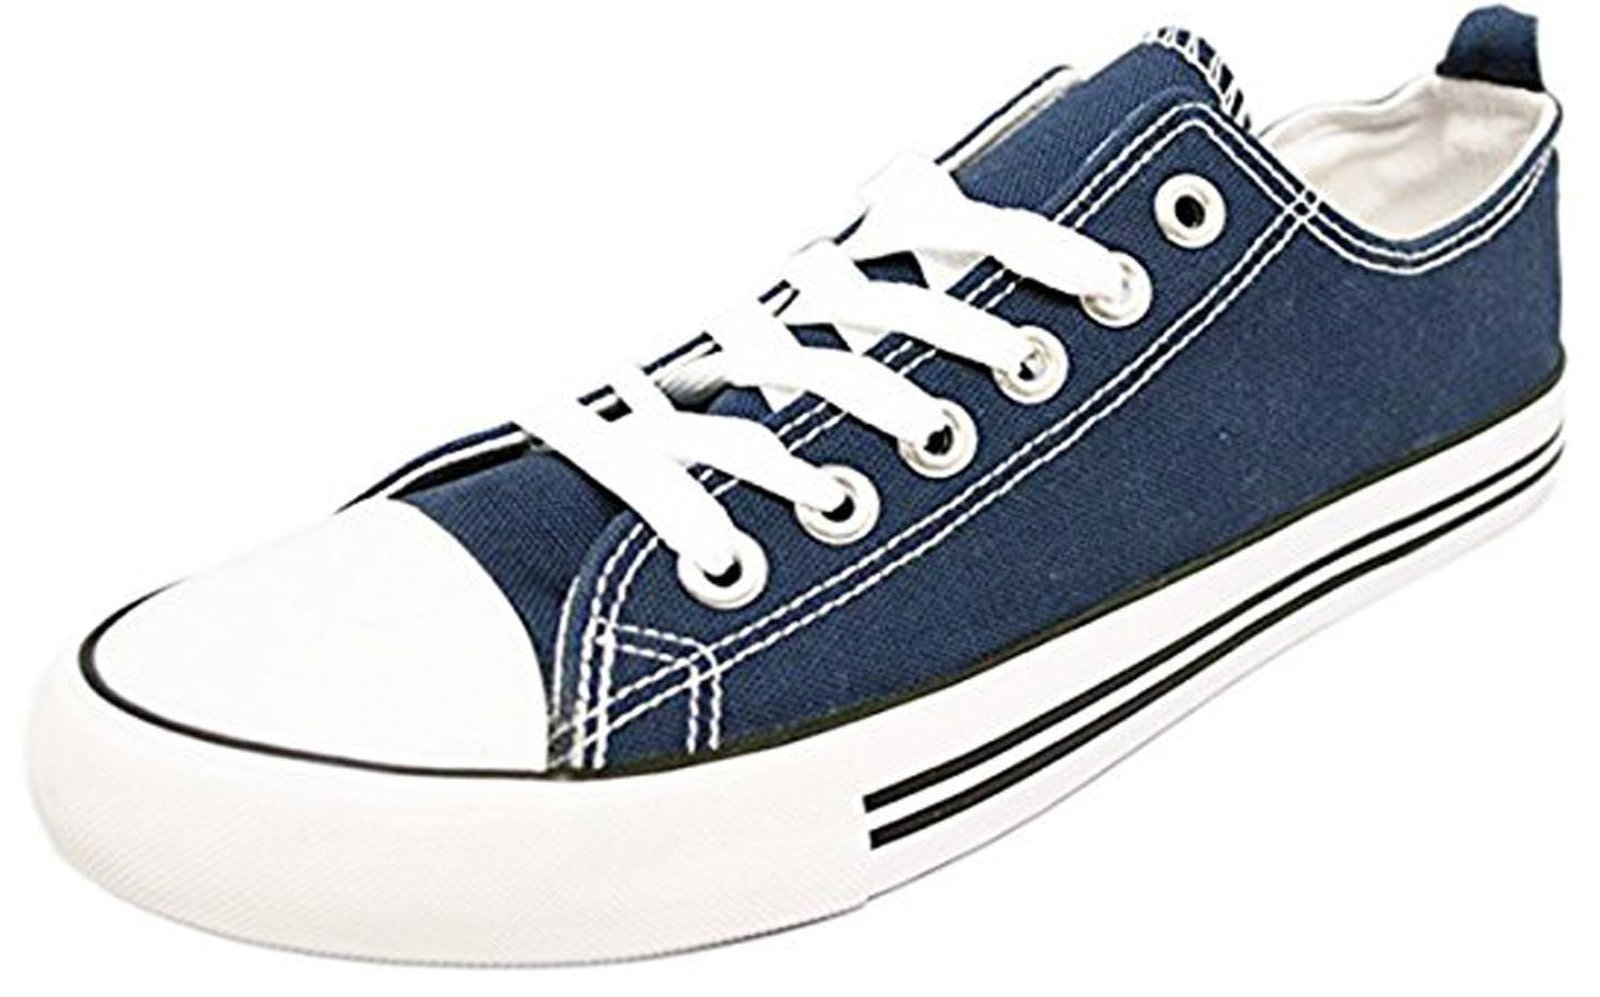 Shop Pretty Girl Women's Sneakers Casual Canvas Shoes Solid Colors Low Top Lace up Flat Fashion 2.0 (8, Navy Blue)